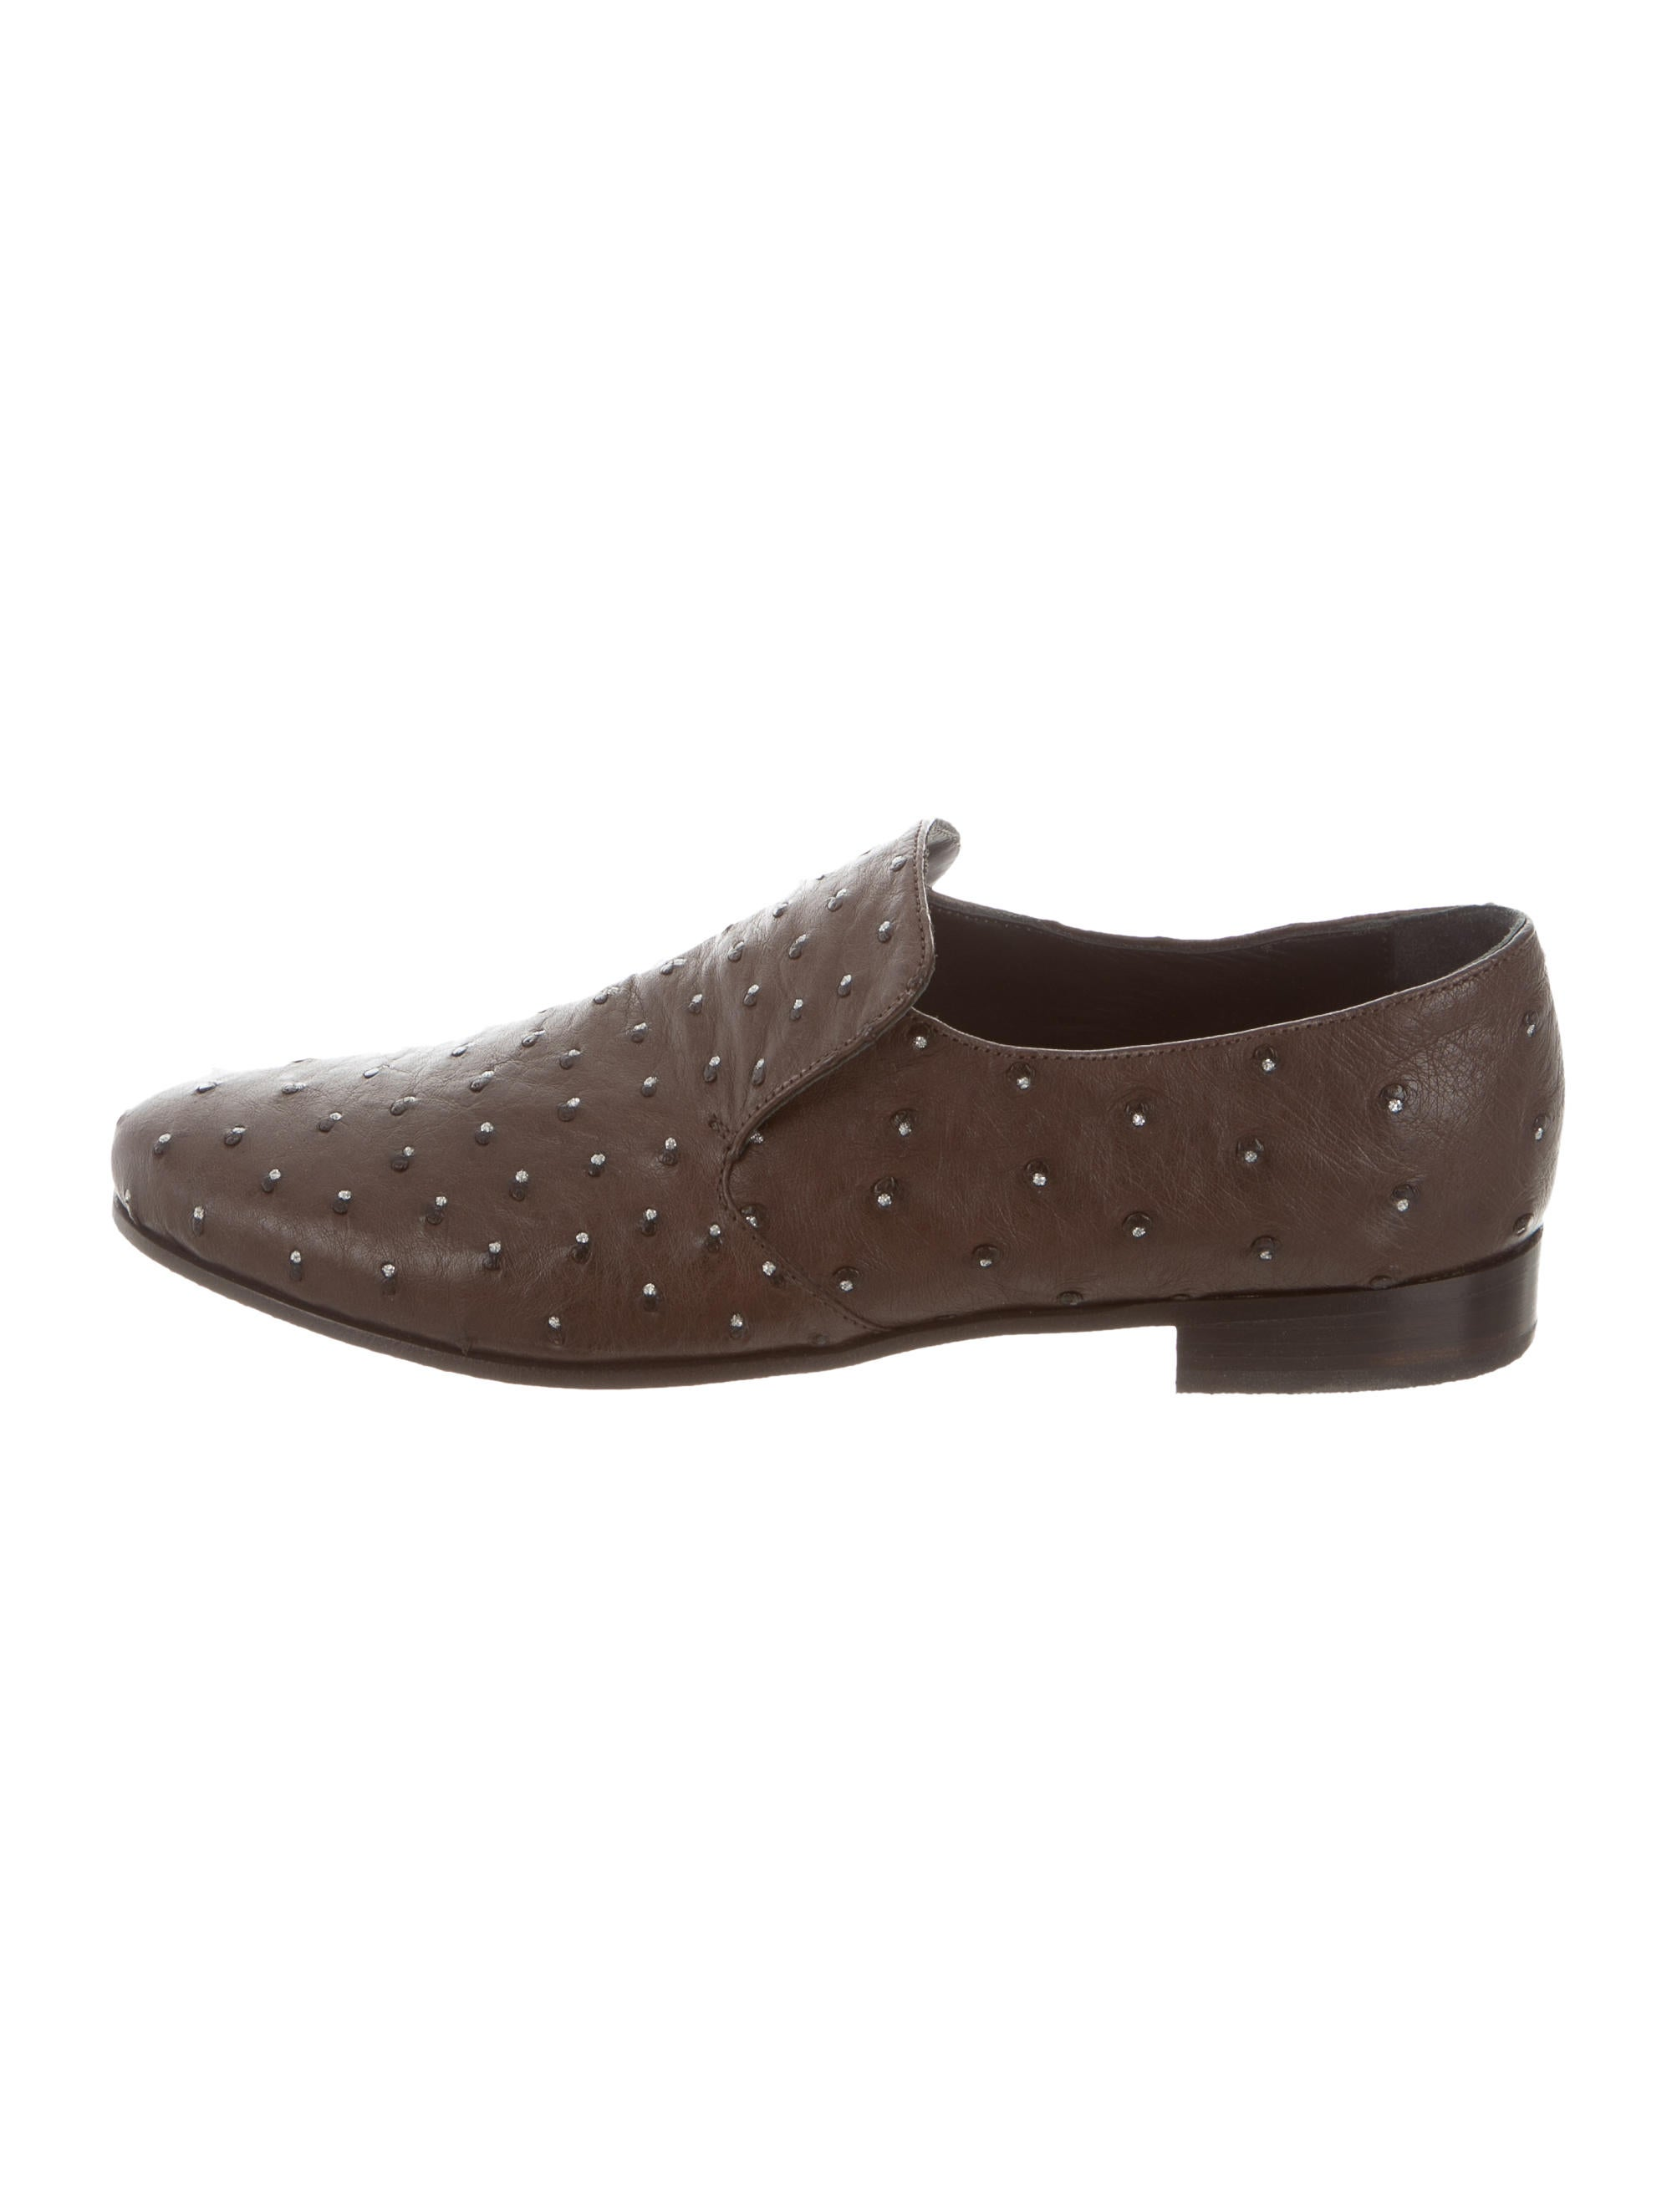 cheap sale sale with credit card for sale Brunello Cucinelli Ostrich Round-Toe Loafers w/ Tags limited edition for sale amazing price cheap price bFhCs3bgj